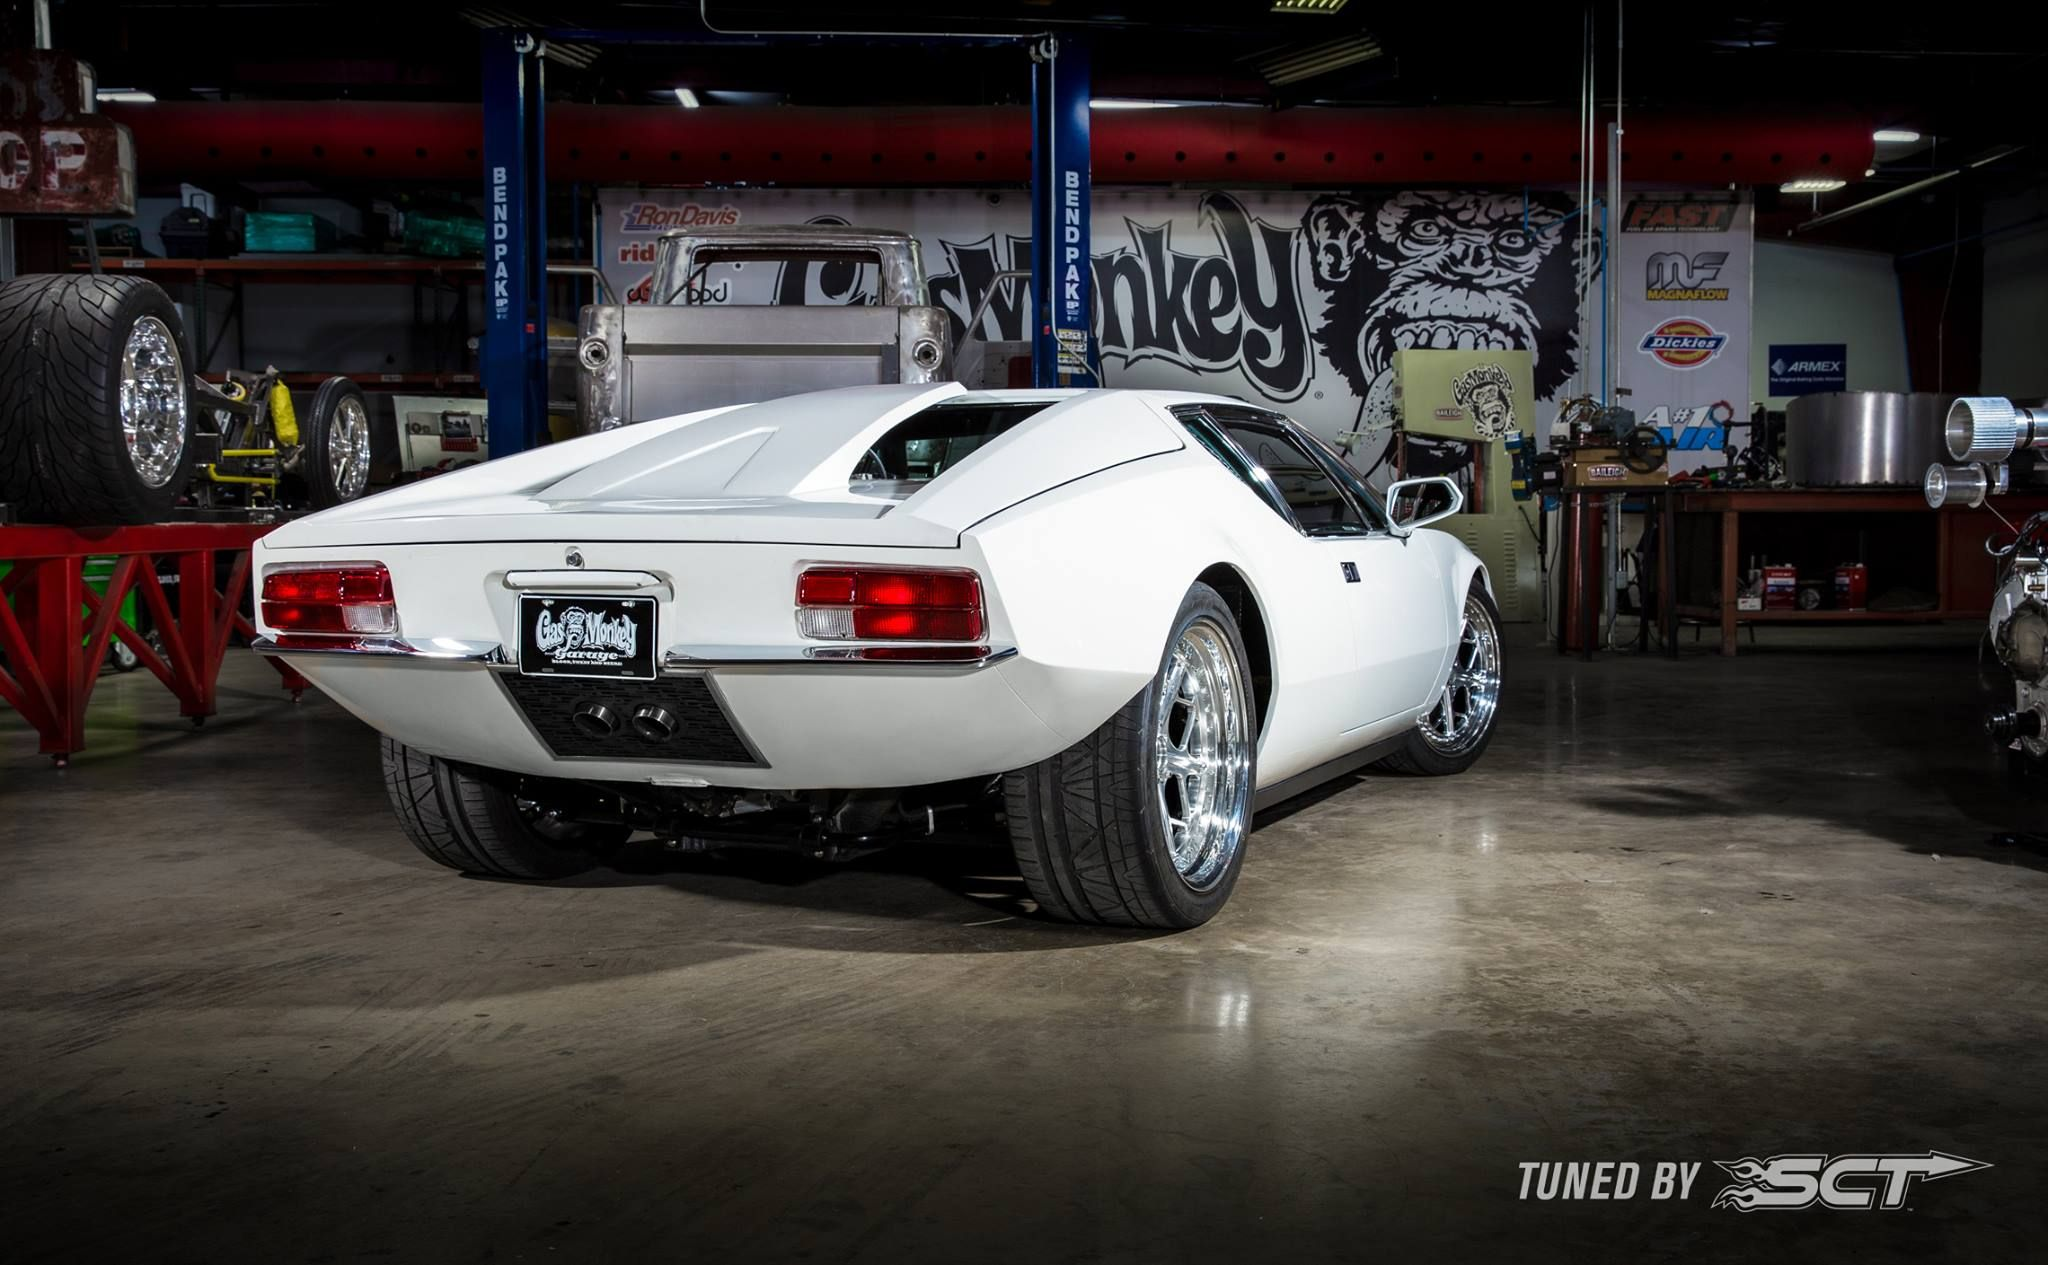 This Ecoboost Swapped De Tomaso Pantera Is Basically a 1972 Ford GT